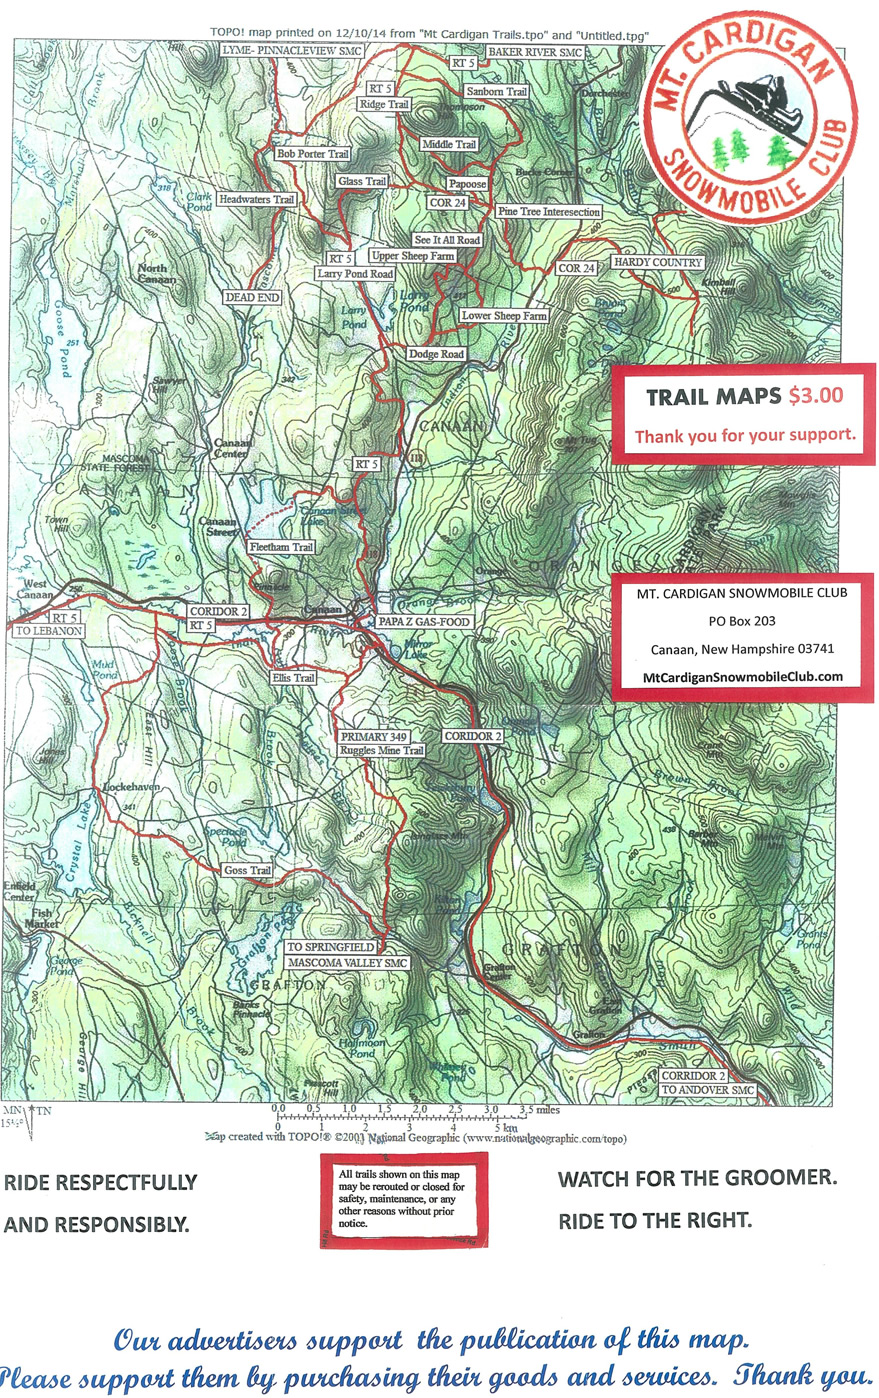 Trail Map – Mt Cardigan Snowmobile Club on nh all terrain vehicle trail map, cheshire nh map, nh dirtbike trail map, cannon mt trail map, nh new hampshire state map, nh fish and game map, gunstock mountain trail map, storm king mountain hiking trail map, maine its snowmobile map, lebanon nh rail trail map, nh on us map, brownfield me map, nh lakes and ponds map, beacon hill spokane trail map, nh atv trail map, mount rose nevada map, r.b. winter state park map, snowshoe mountain ski map, caswell state park trail map, nh hiking trail map,